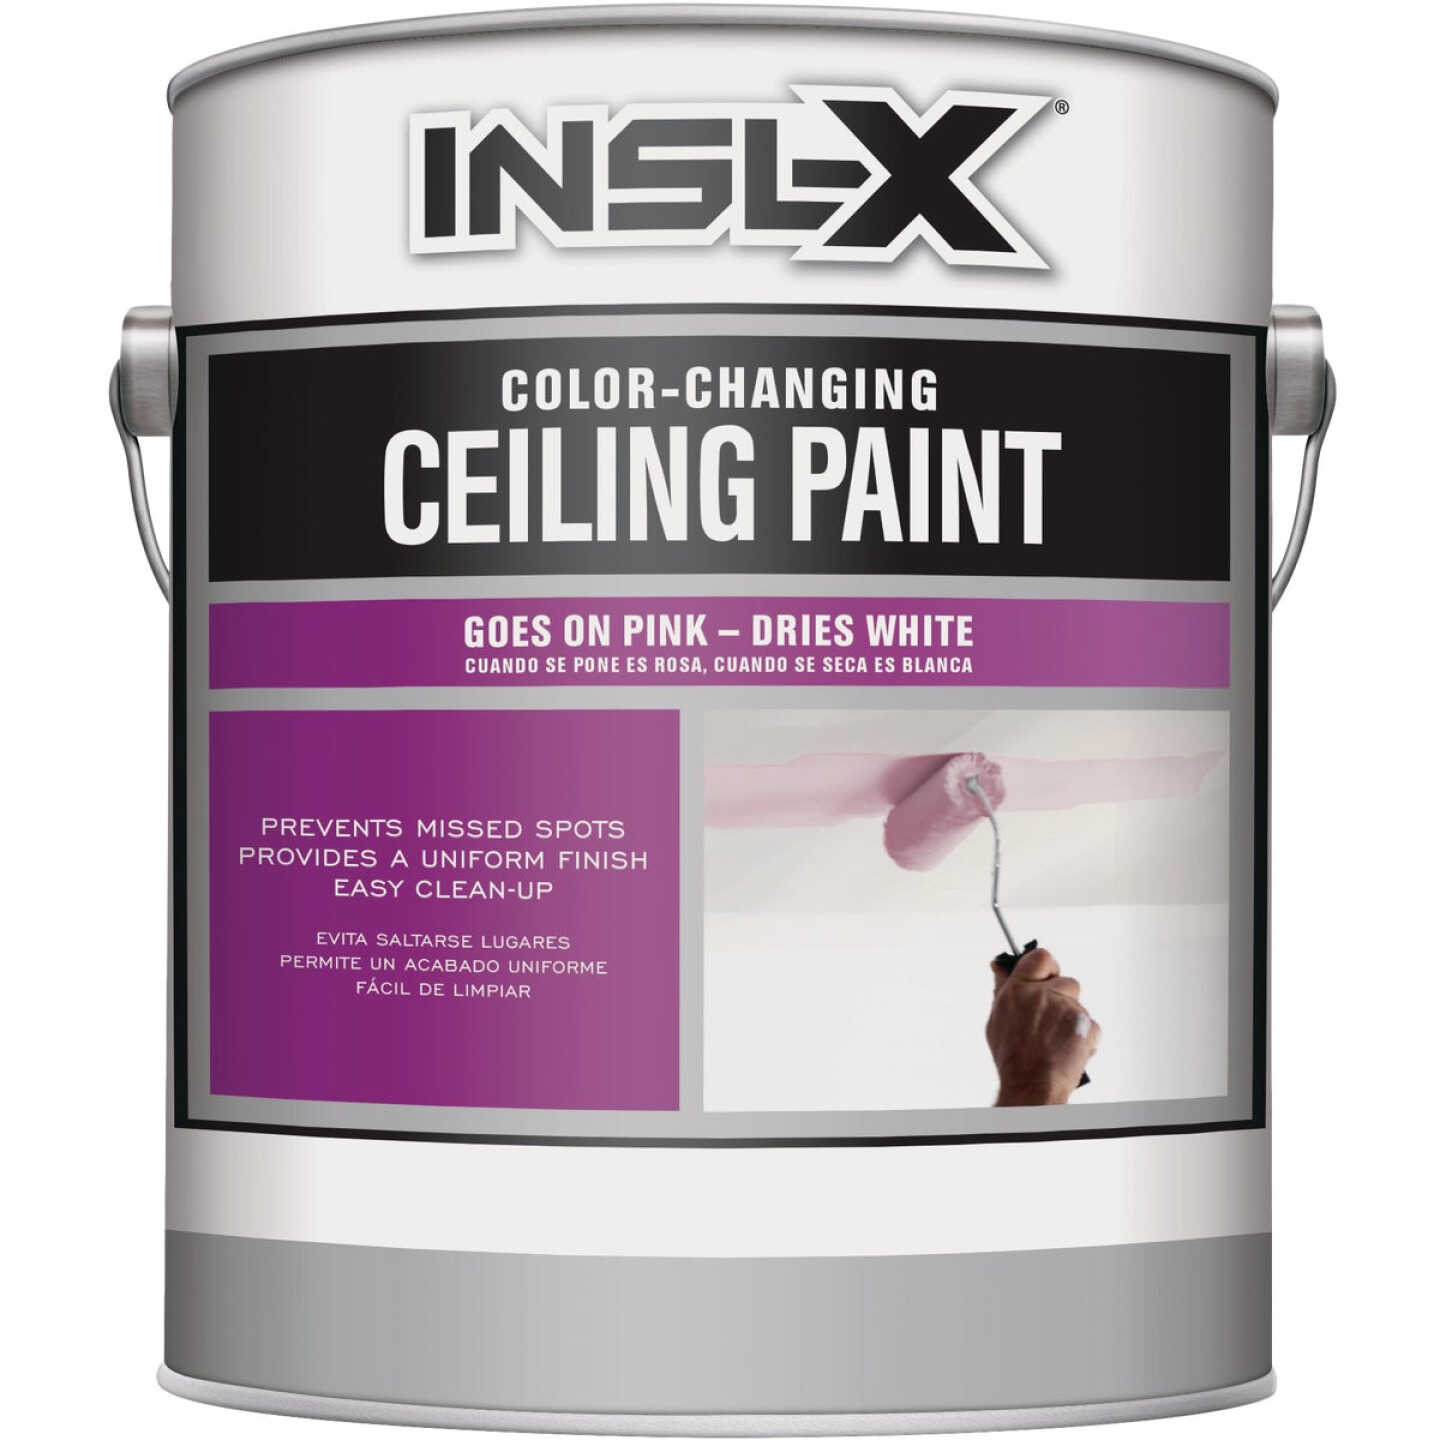 Insl-X 1 Gal. Color-Changing Ceiling Paint Image 1